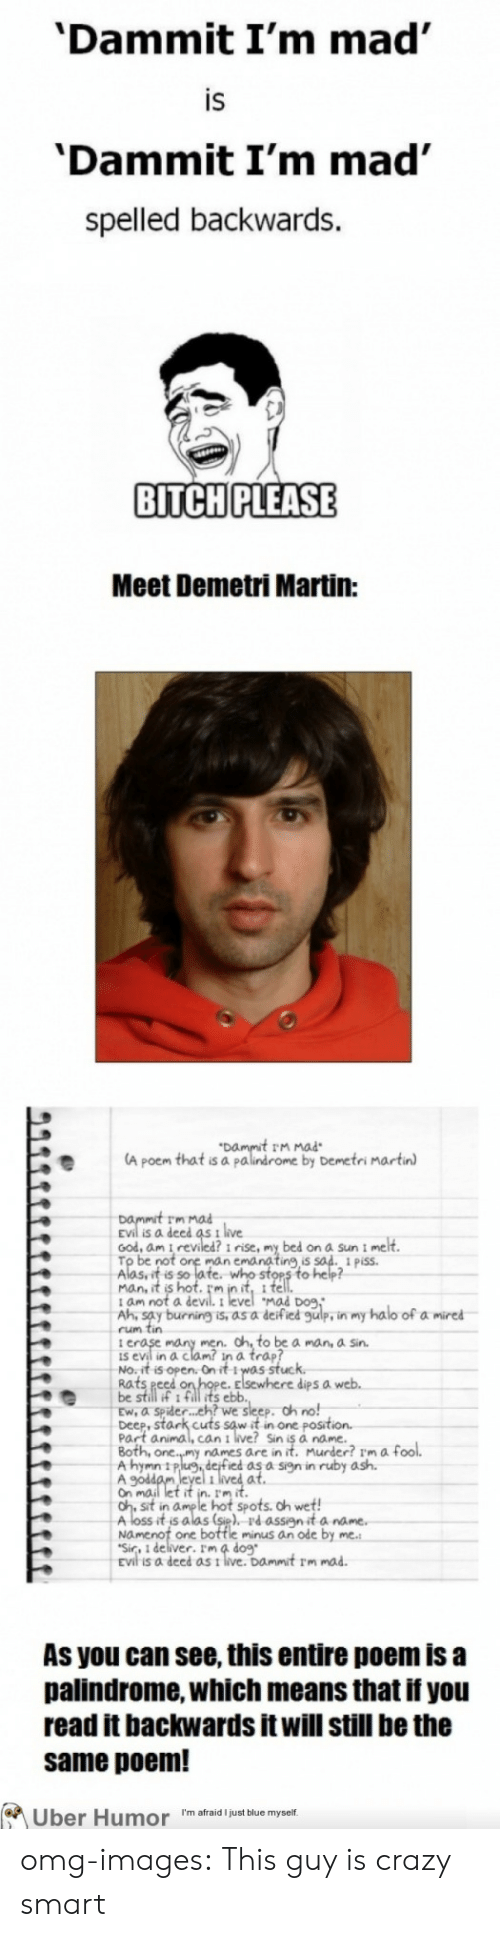 Ash, Crazy, and Halo: 'Dammit I'm mad  IS  'Dammit I'm mad'  spelled backwards.  BITCH PLEASE  Meet Demetri Martin:  t rm mad  A poem that is a palindrome by Demetri martin  Dammit rm  is a deed as t live  ood, am i reviled? i rise, my bed on a Sun i me  man c  ing,is  Aasuit s of fe nito sten o hep  Mad Do9  t am not a  Ah, say burning is, as a deified gulp, in my halo of a mired  rum tin  i e  is evil in a clam? in a trap?  No.it is open. On it 1was stuc  Rats eed  be still if 1 fill its eblb  Ew, a spider.. eh? we sleep. oh no!  Deep, stark cuts sow it in one posit  Part animal, can i live? Sin is à name.  dips a  names are in it. Murder? rm a fool.  A hymn 11P  ed as a sign in ruby ash.  Gh st in aume l hot spots. oh wet!  Aloss it's alas (st), Pd assyit a na  Namenot one bottle minus an ode by  Sir, 1 deliver. Im 4 dog  As you can see, this entire poem is a  palindrome, which means that if you  read it backwards it will still be the  same poem!  Uber Humor I'm afraid just blue myself omg-images:  This guy is crazy smart